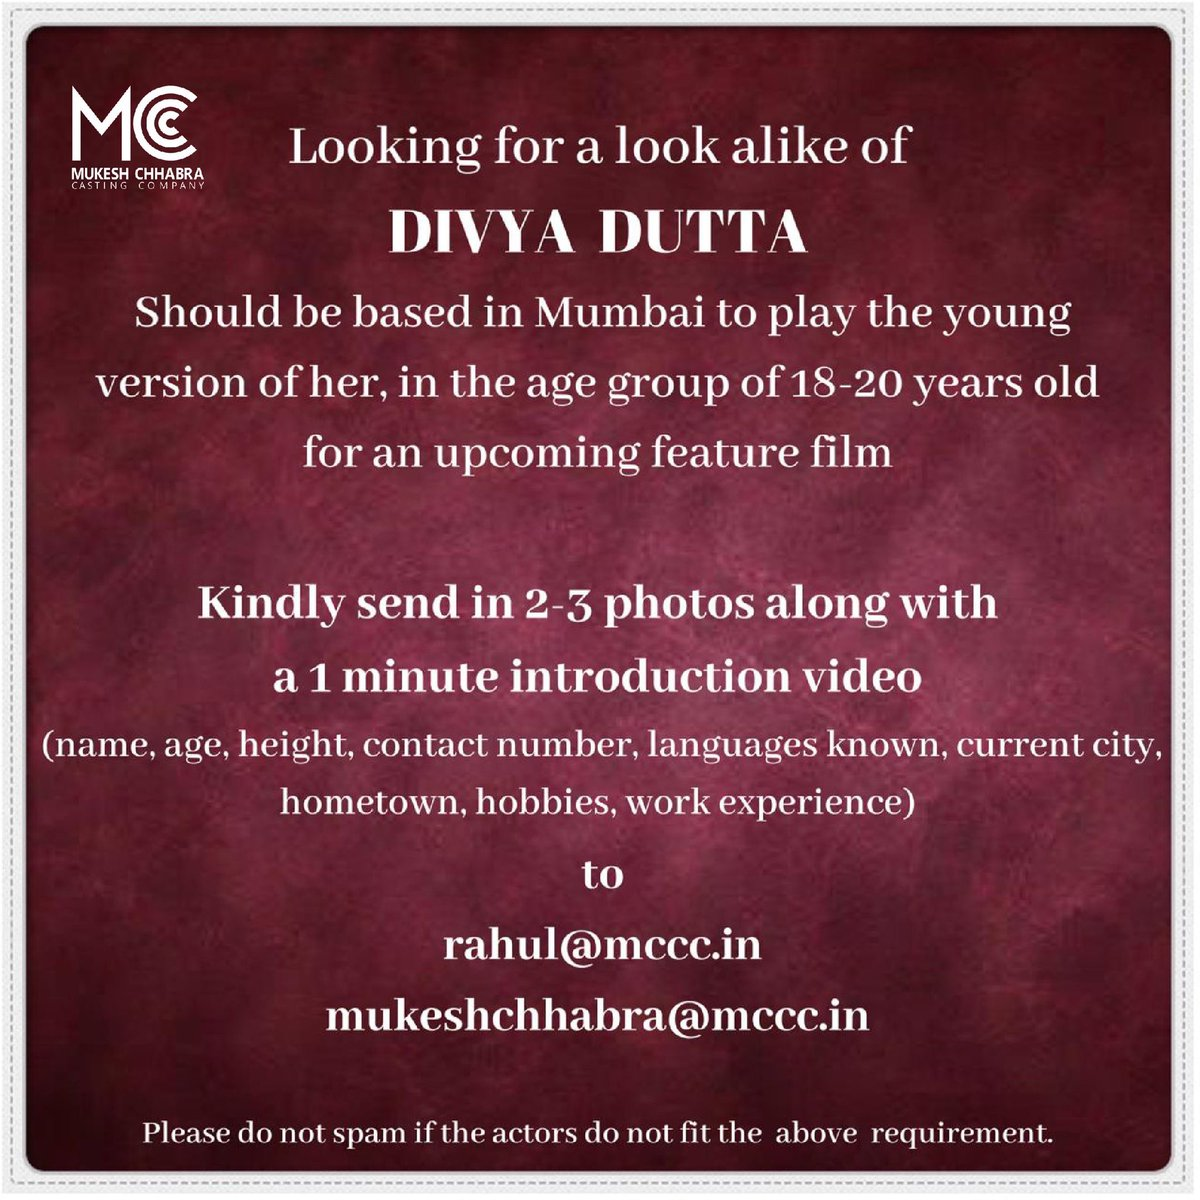 Casting Call 📯 Looking for look alike of Divya Dutta for an upcoming project in the age group of 18-20 years old, to play the young version of her. Should be based in Mumbai.